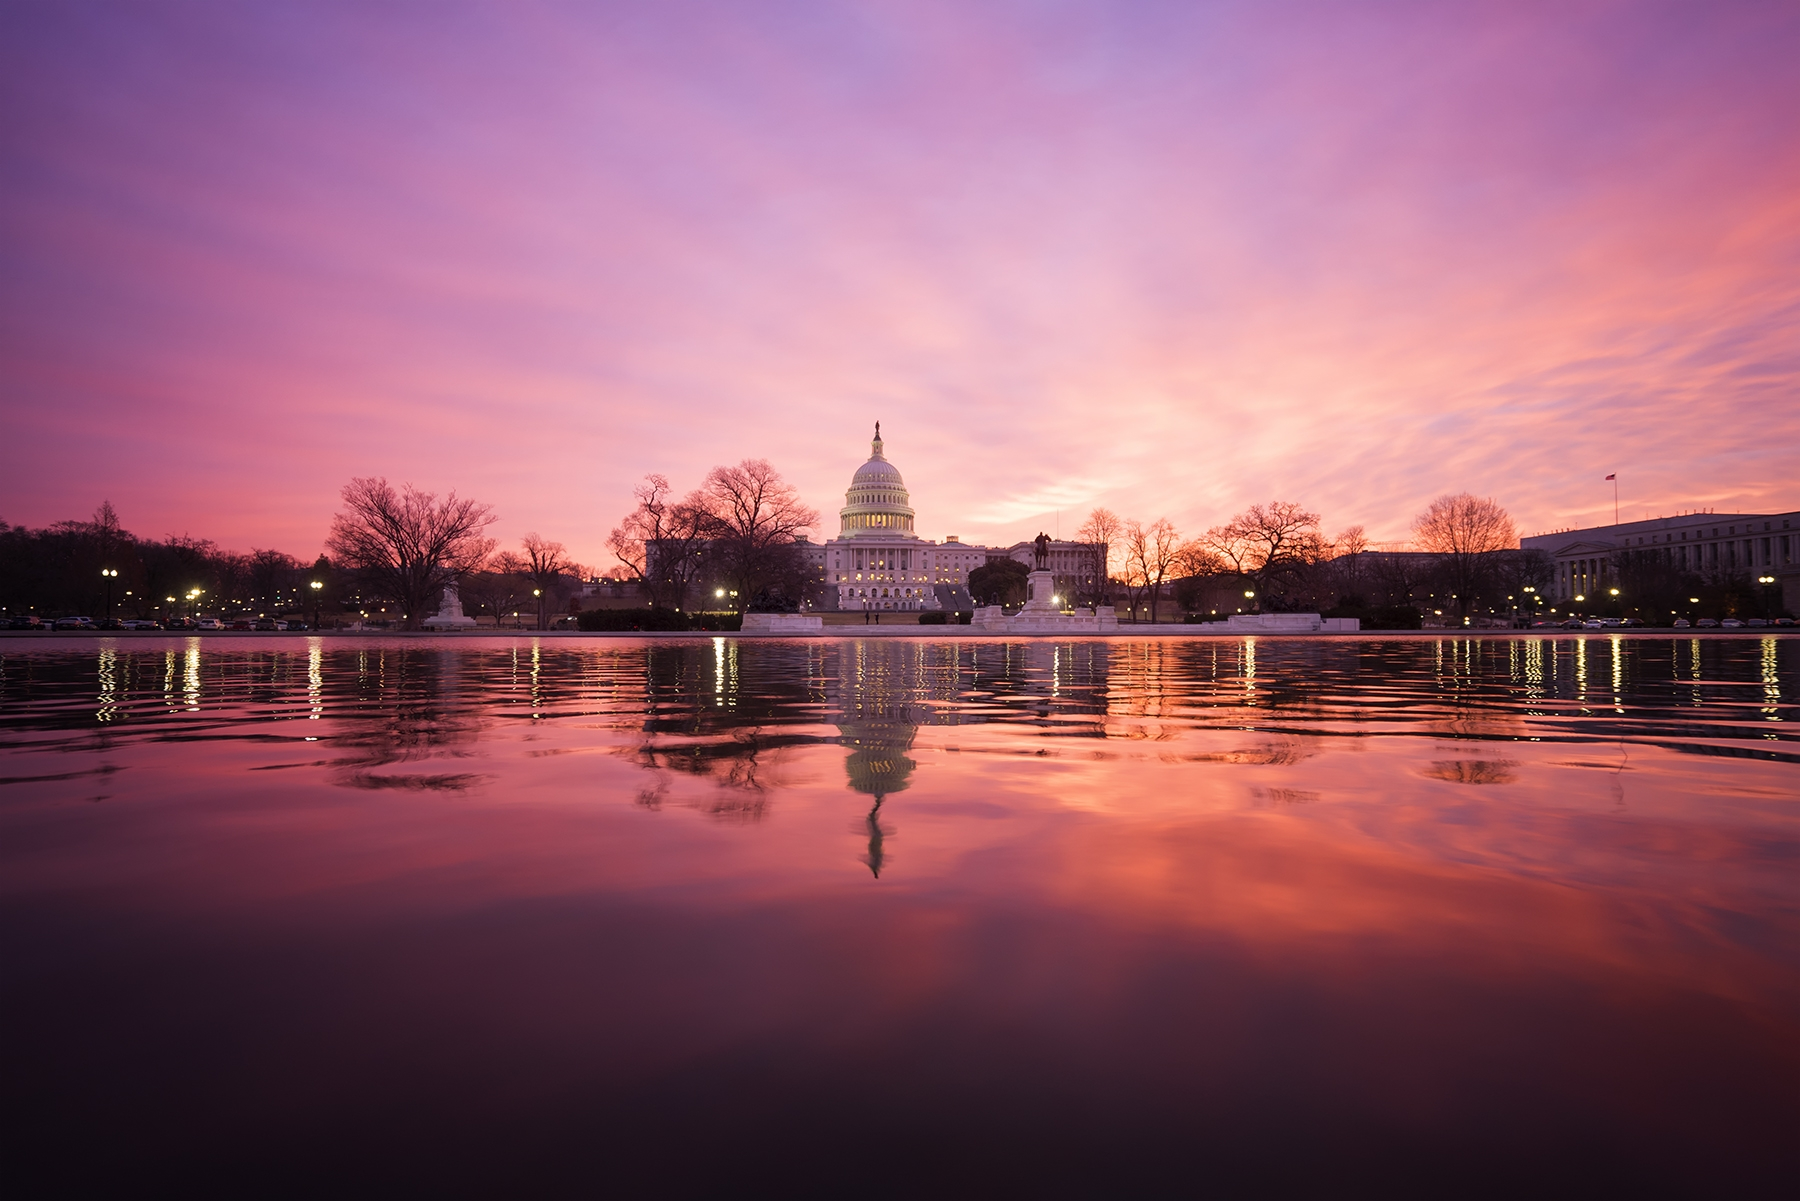 US Capitol Reflecting Pool, us capitol, reflecting pool, washington dc, capitol hill, capitol building, capital, sunrise, early morning, pink, architecture, water, weather, wind, dome